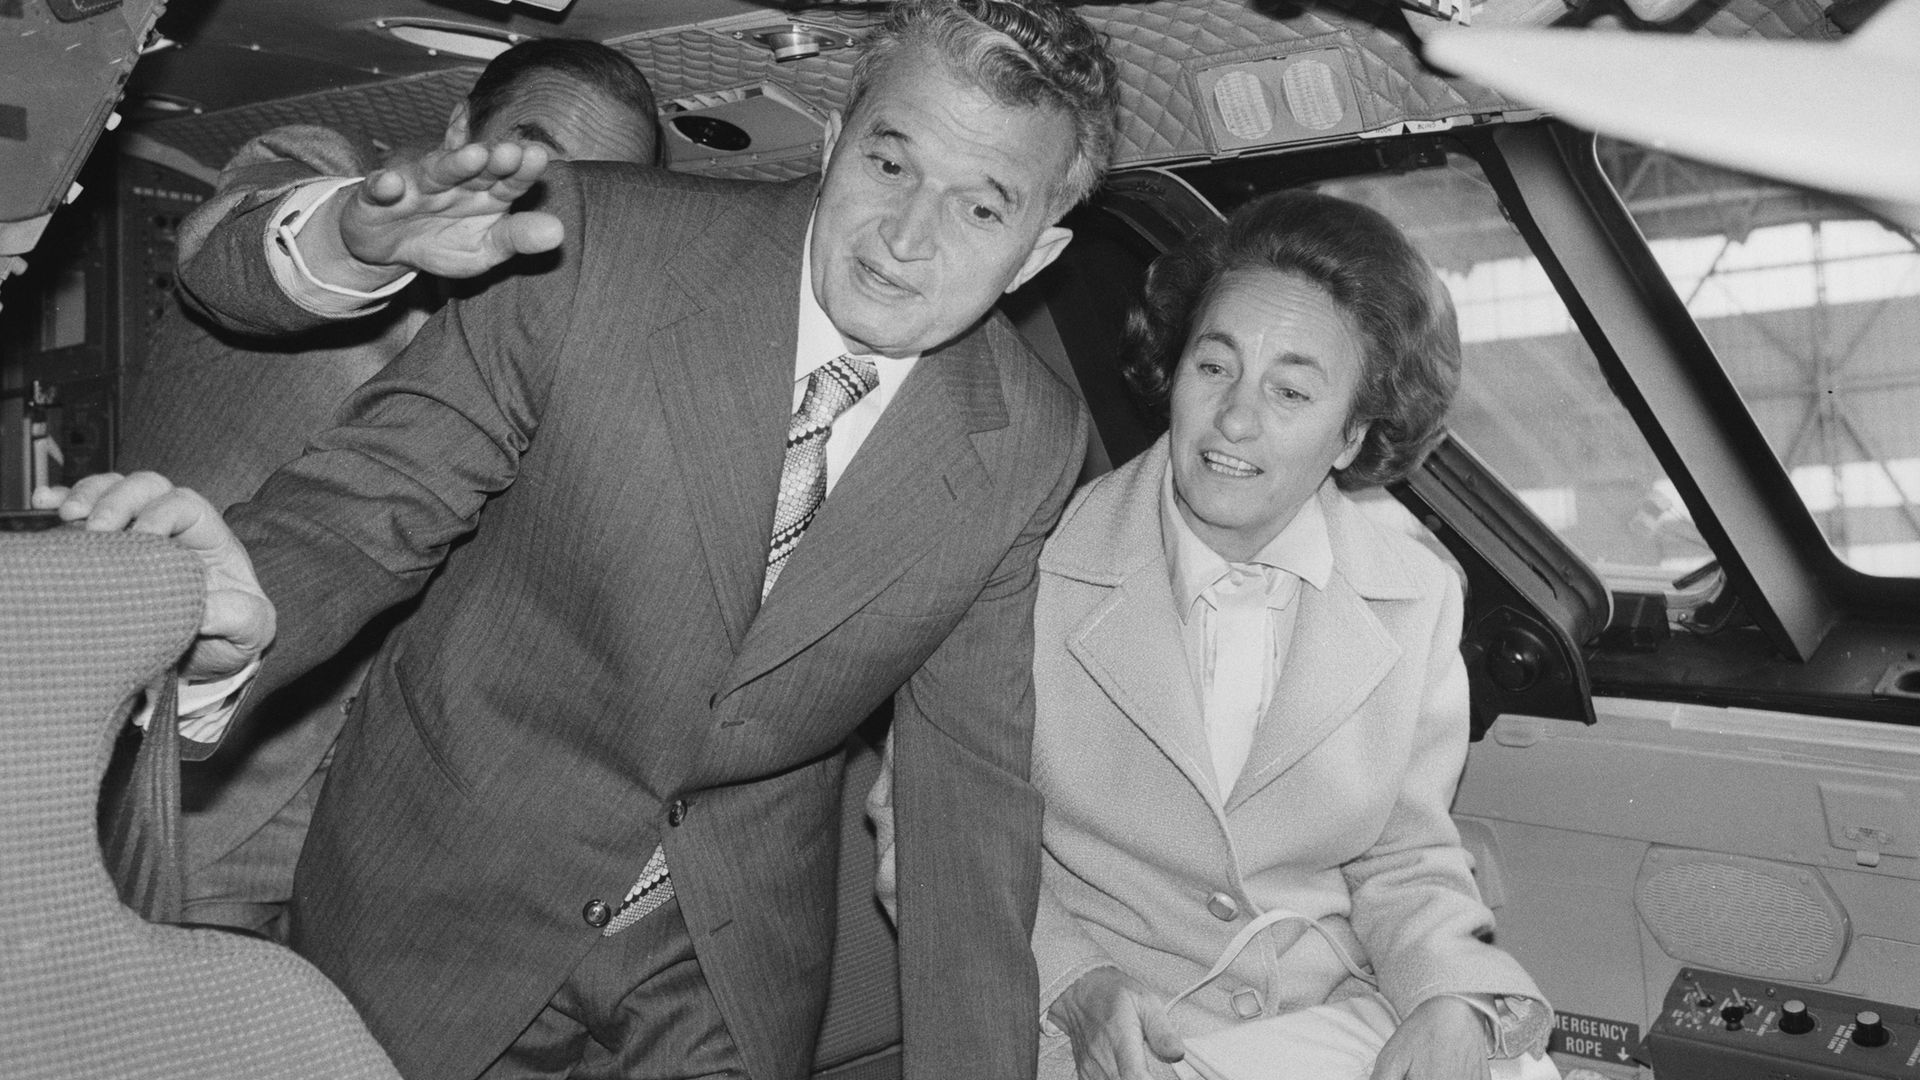 Nicolae and Elena Ceausescu in the cockpit of a Concorde during a visit to the British Aerospace and Rolls-Royce Aero-Engine factories in Bristol, June 1978 - Credit: Photo by Steve Burton/Keystone/Hulton Archive/Getty Images